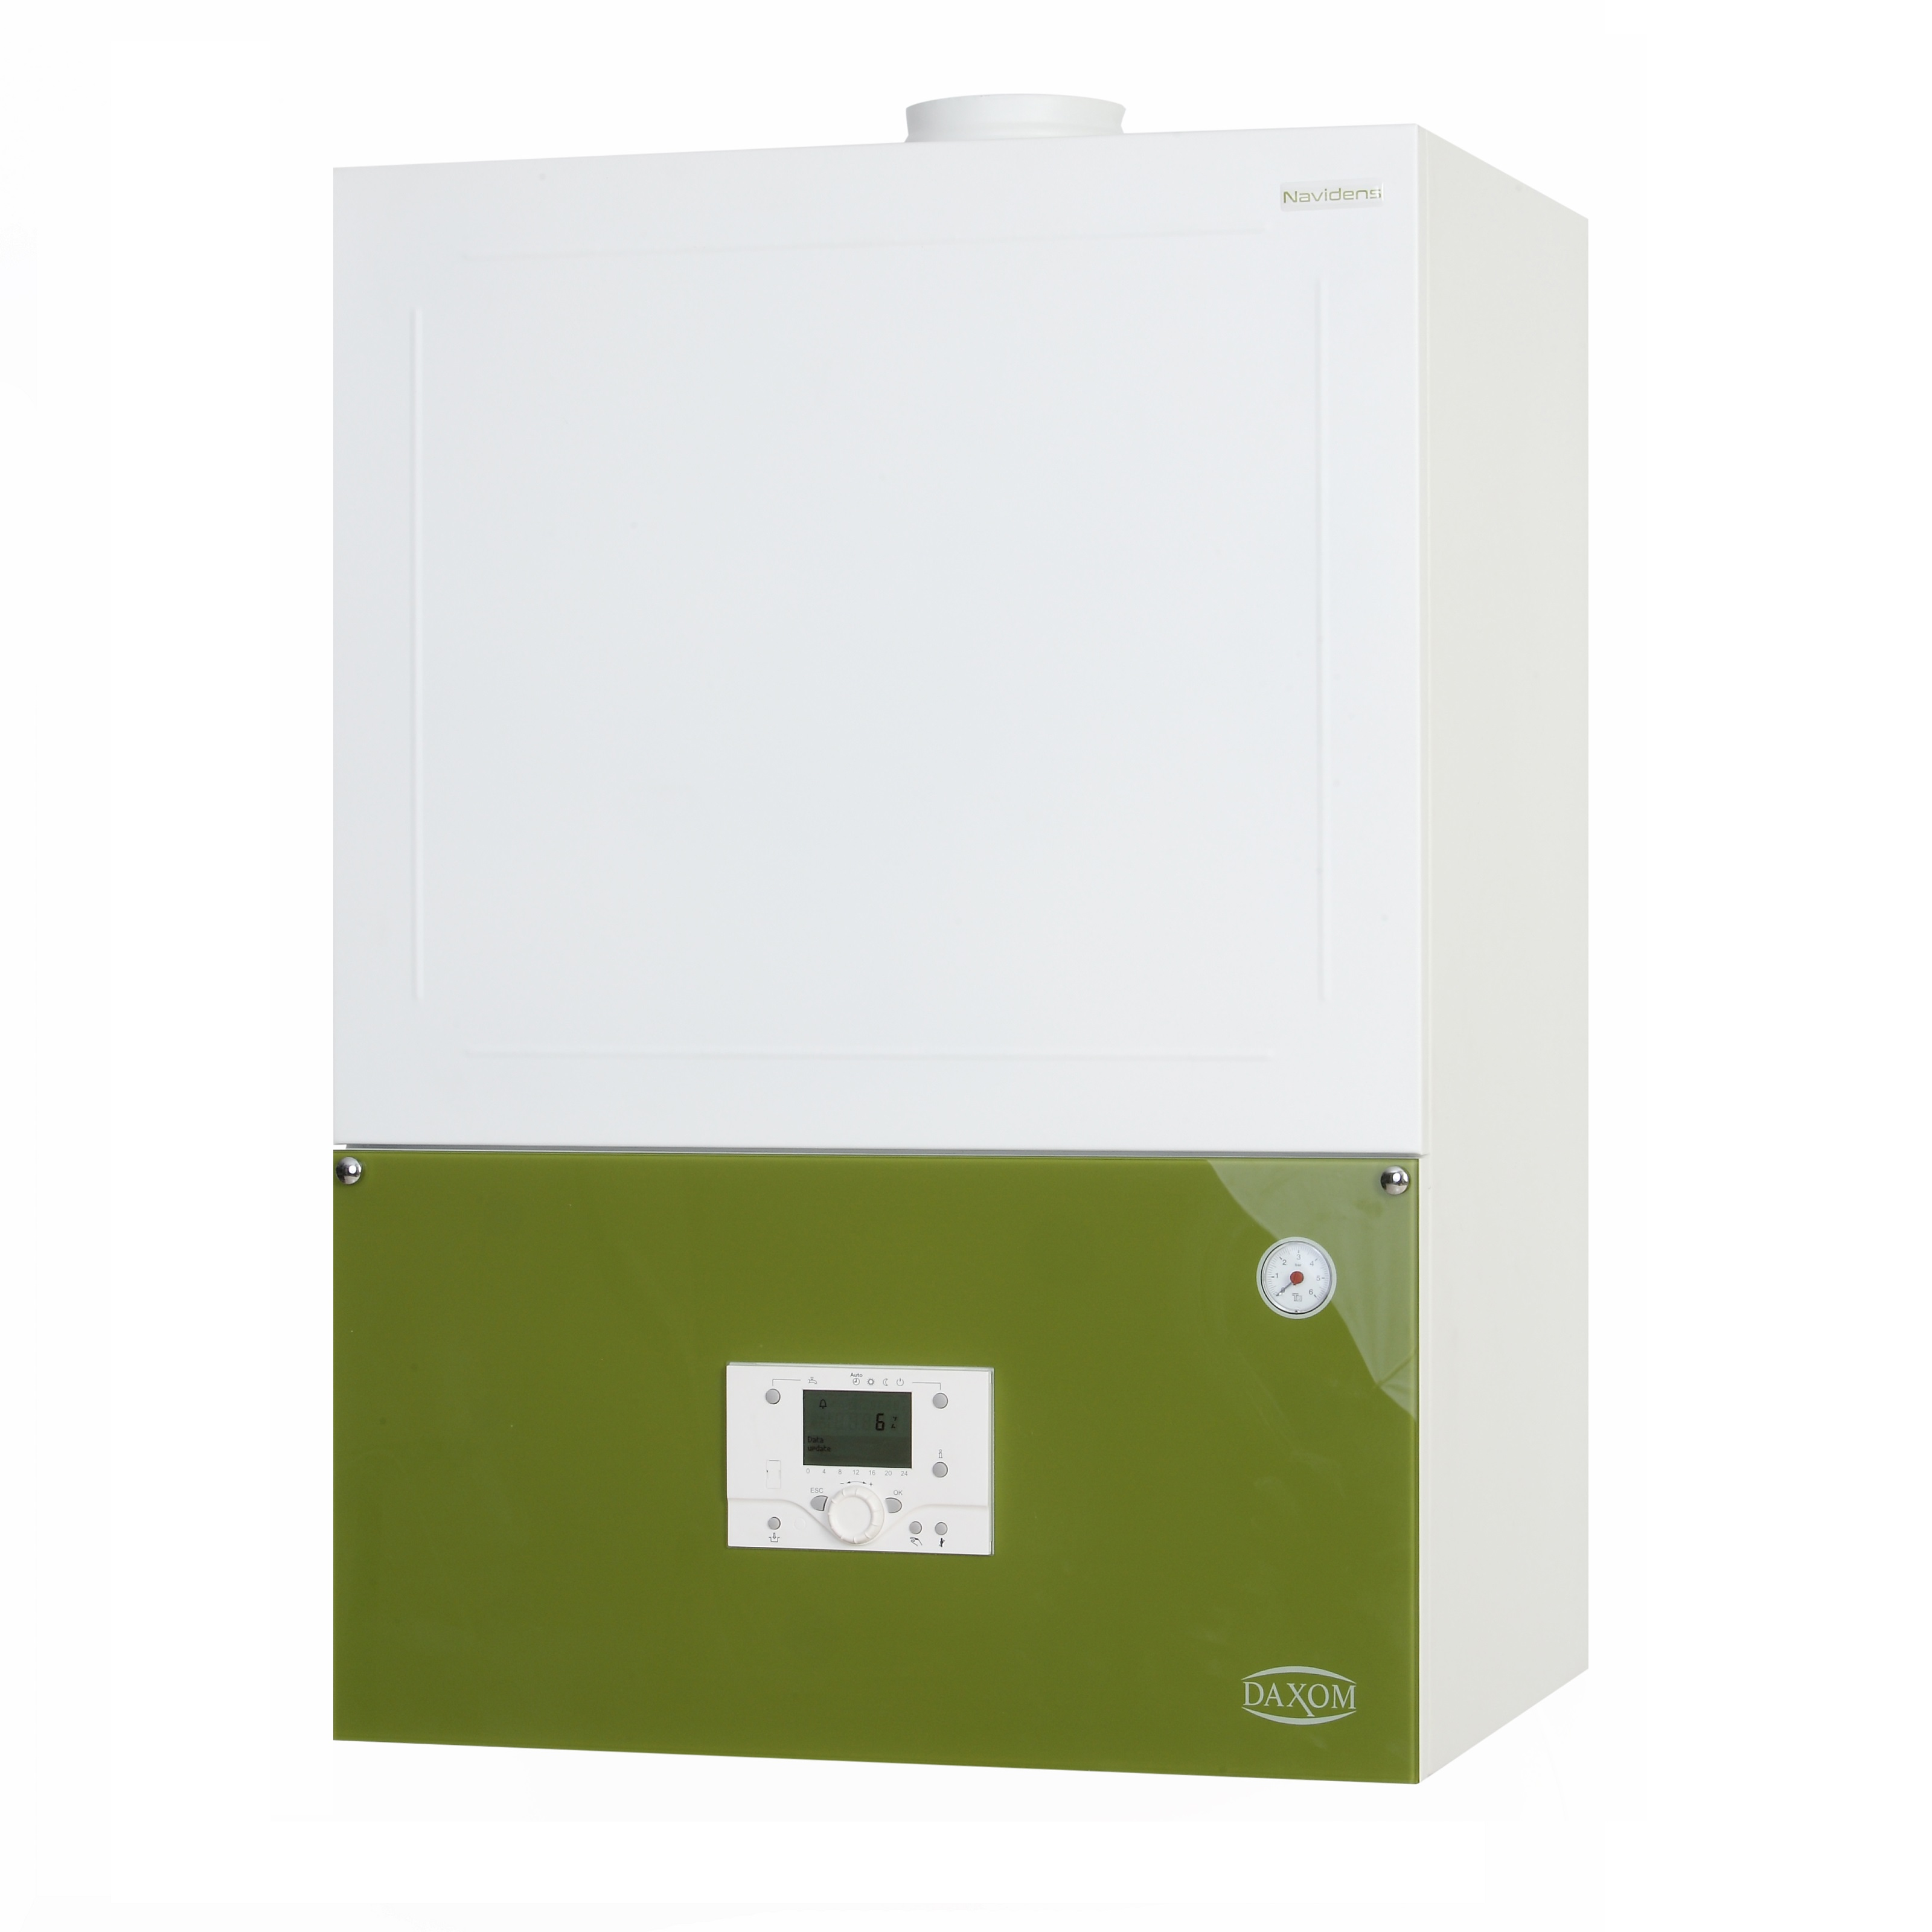 Wall mounted condensing gas boilers 145 kW